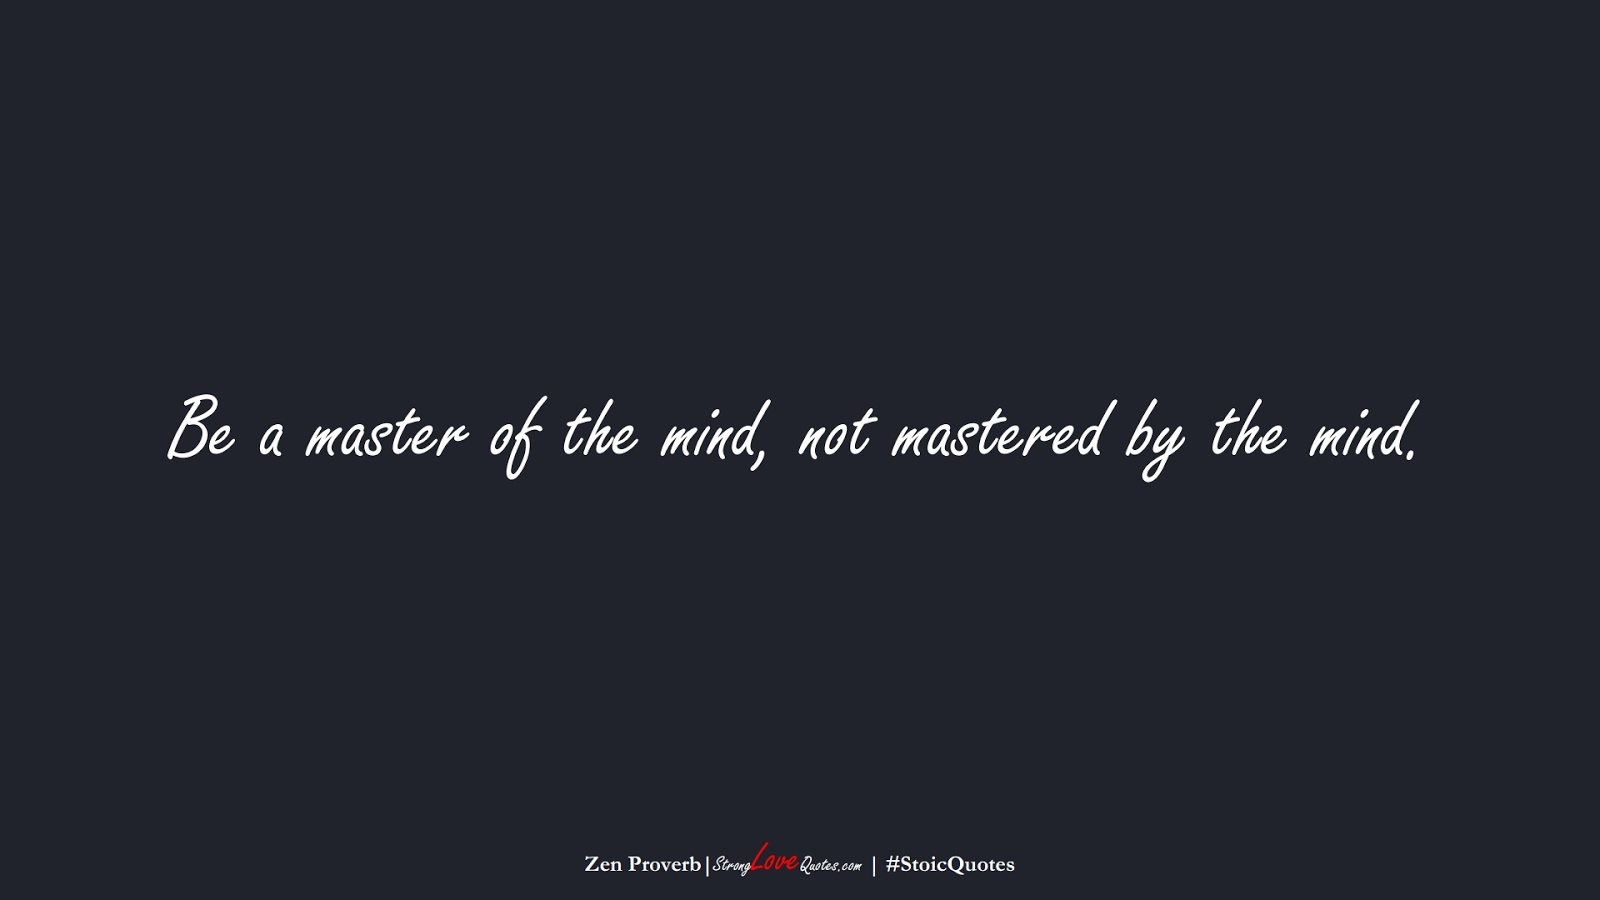 Be a master of the mind, not mastered by the mind. (Zen Proverb);  #StoicQuotes